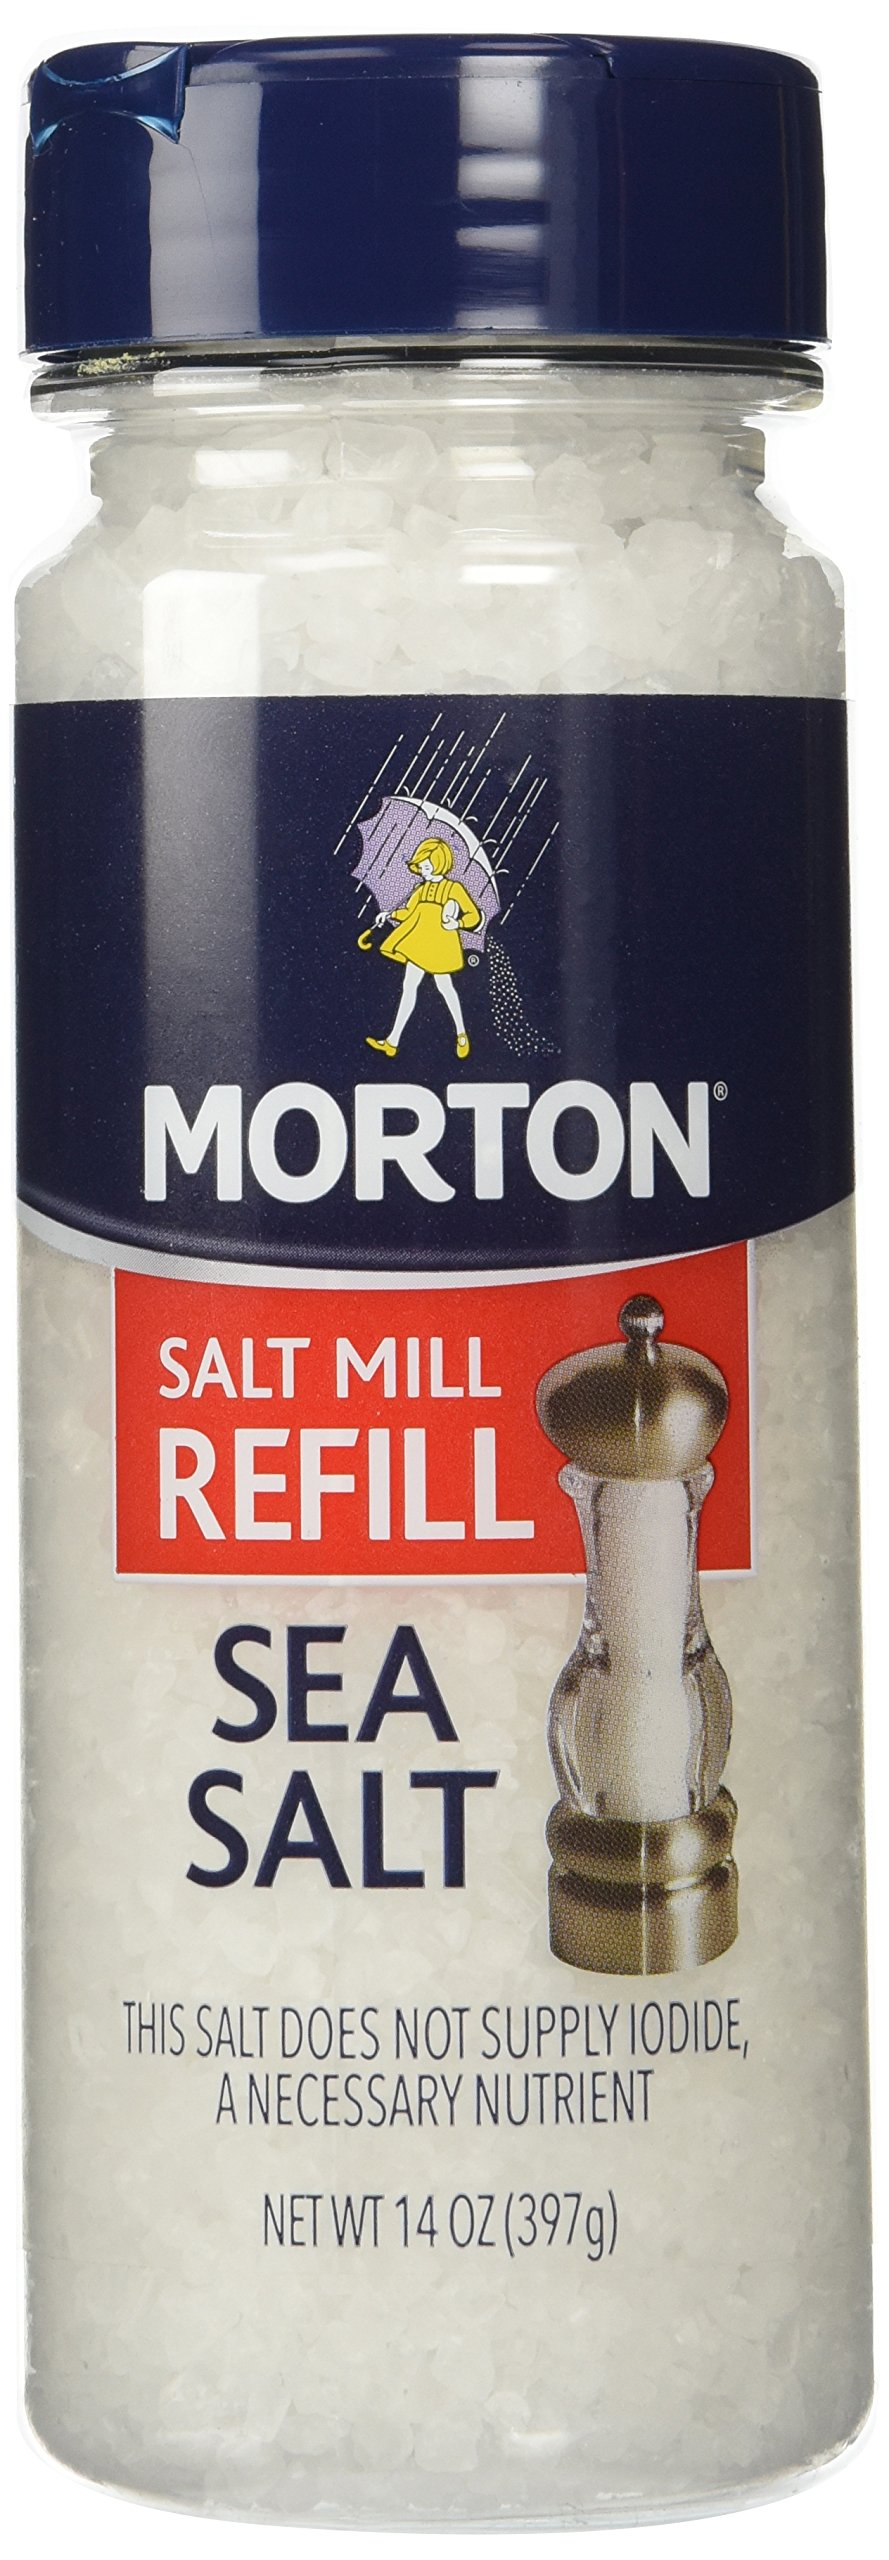 Morton Sea Salt Mill Refill 14 Ounce Canister (Pack of 2)